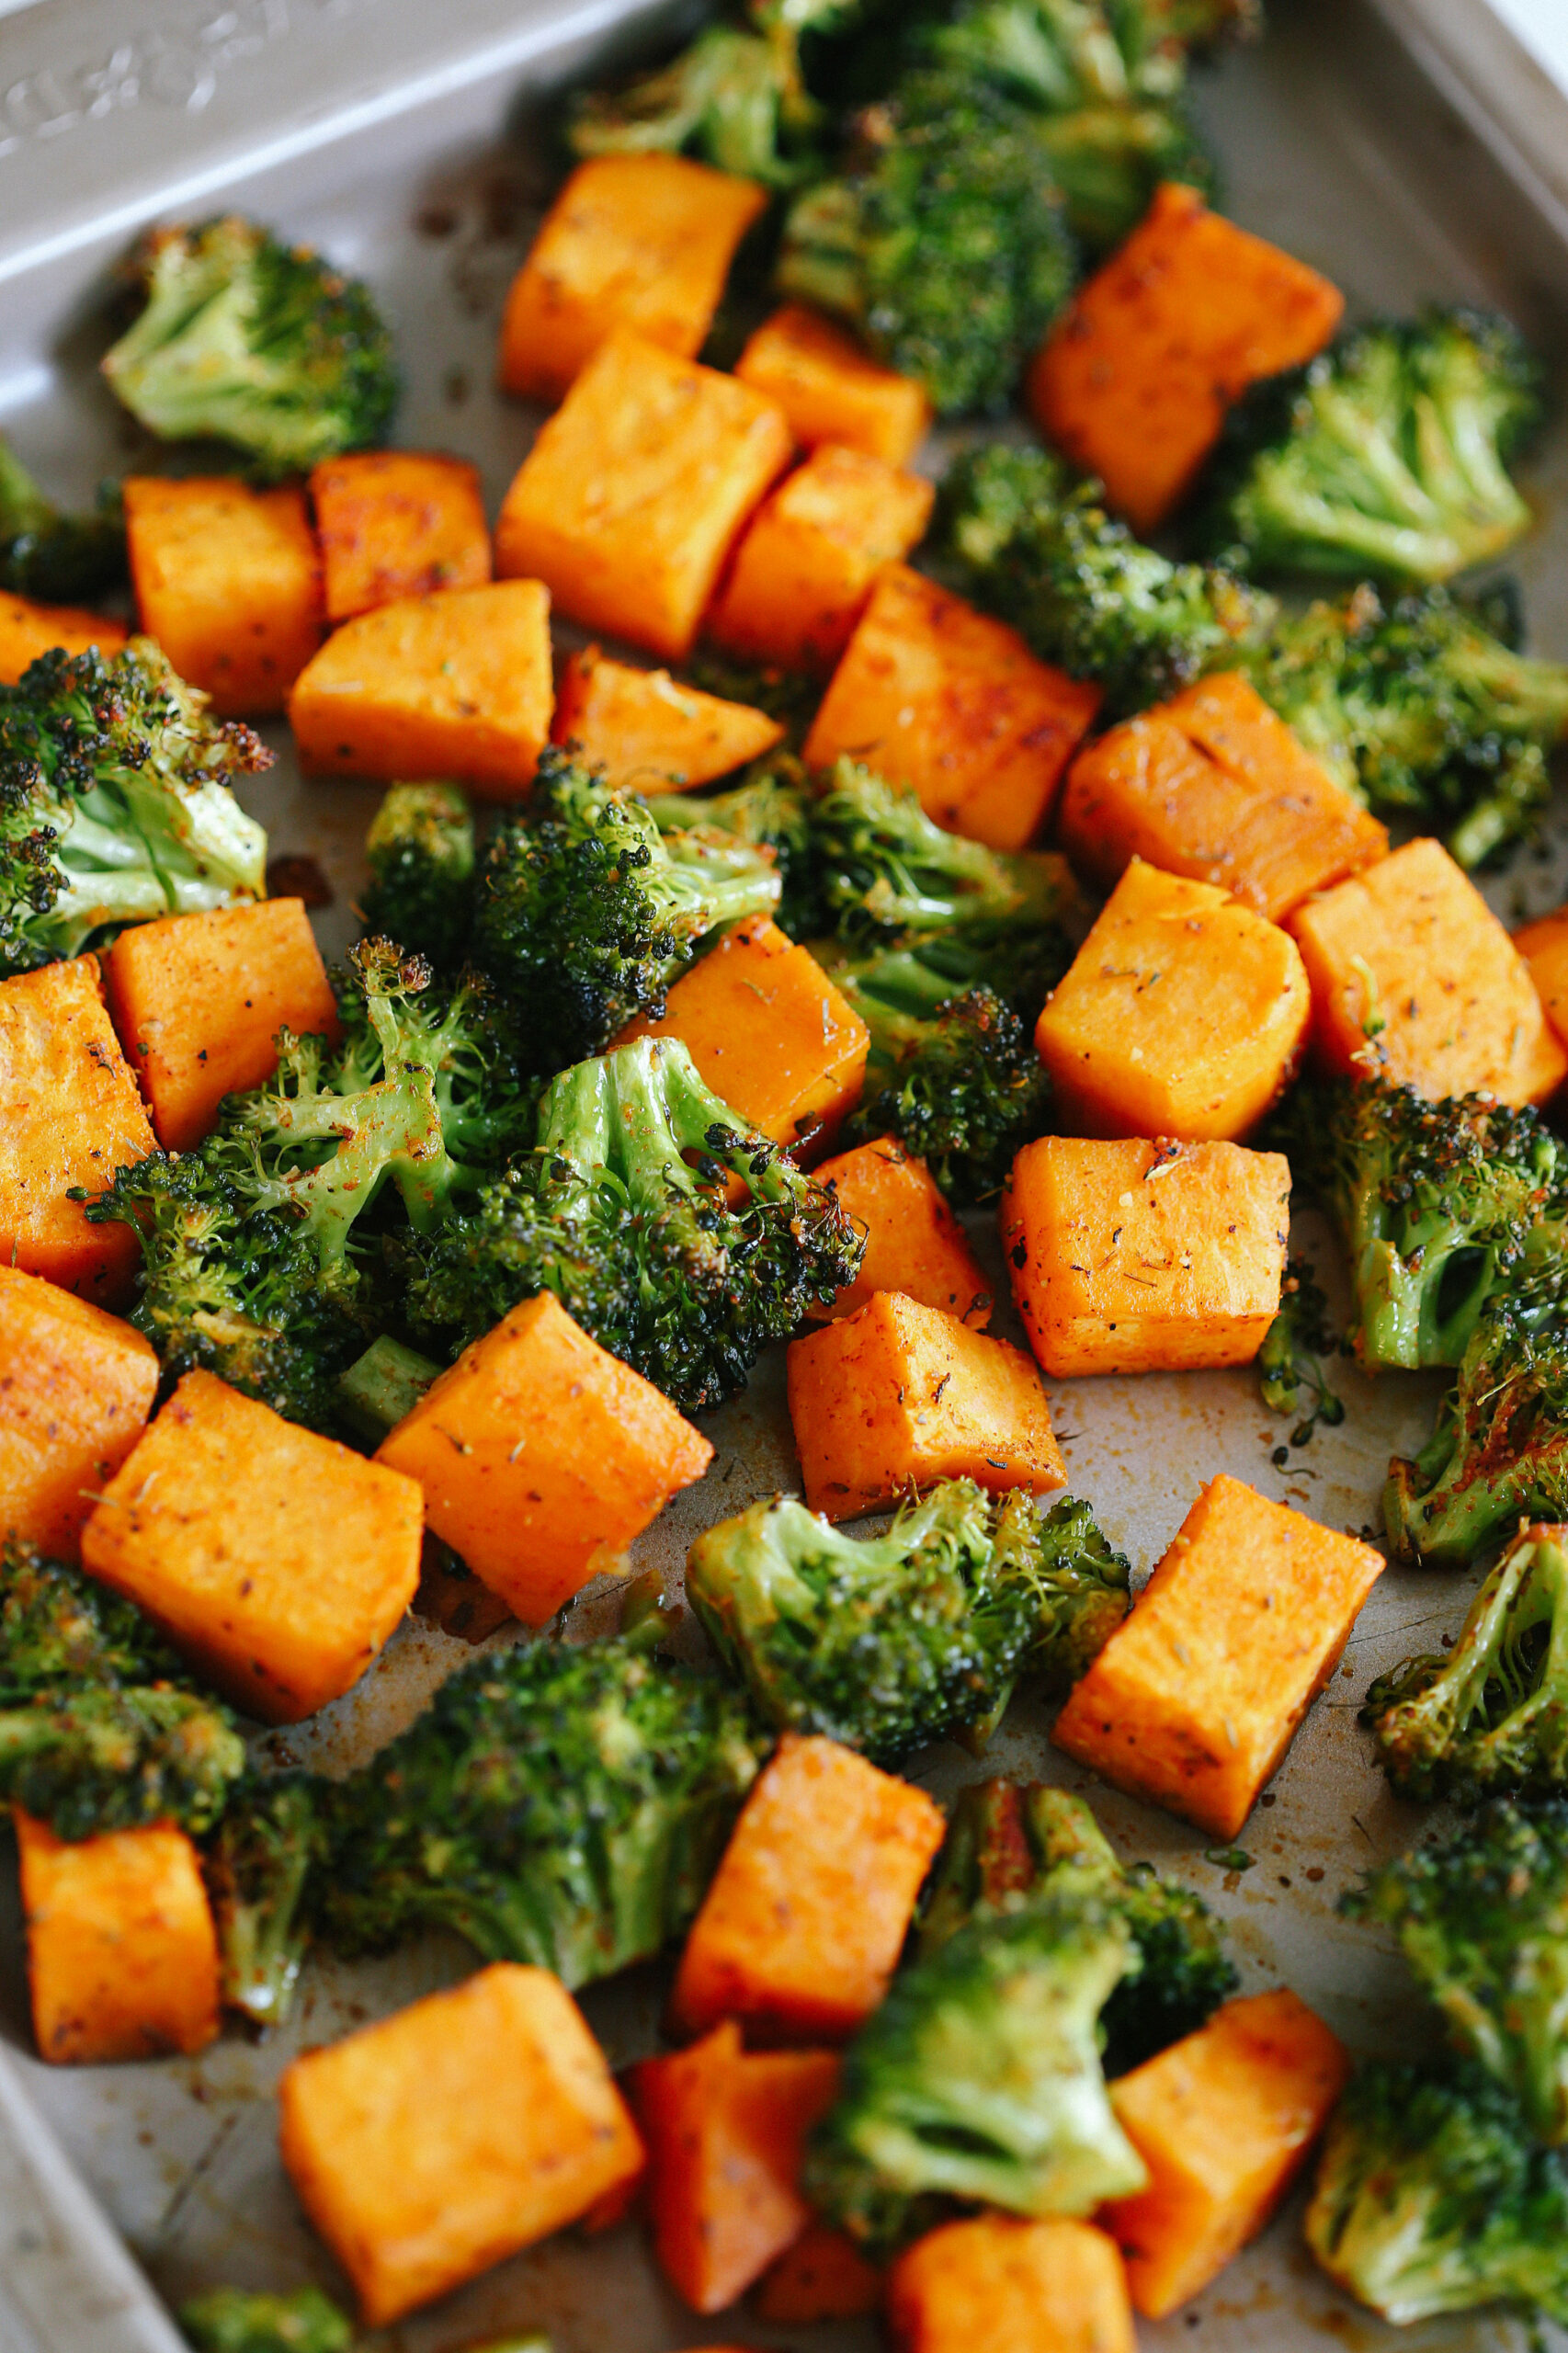 Perfectly Roasted Broccoli & Sweet Potatoes - Healthy And Vegetarian Recipes